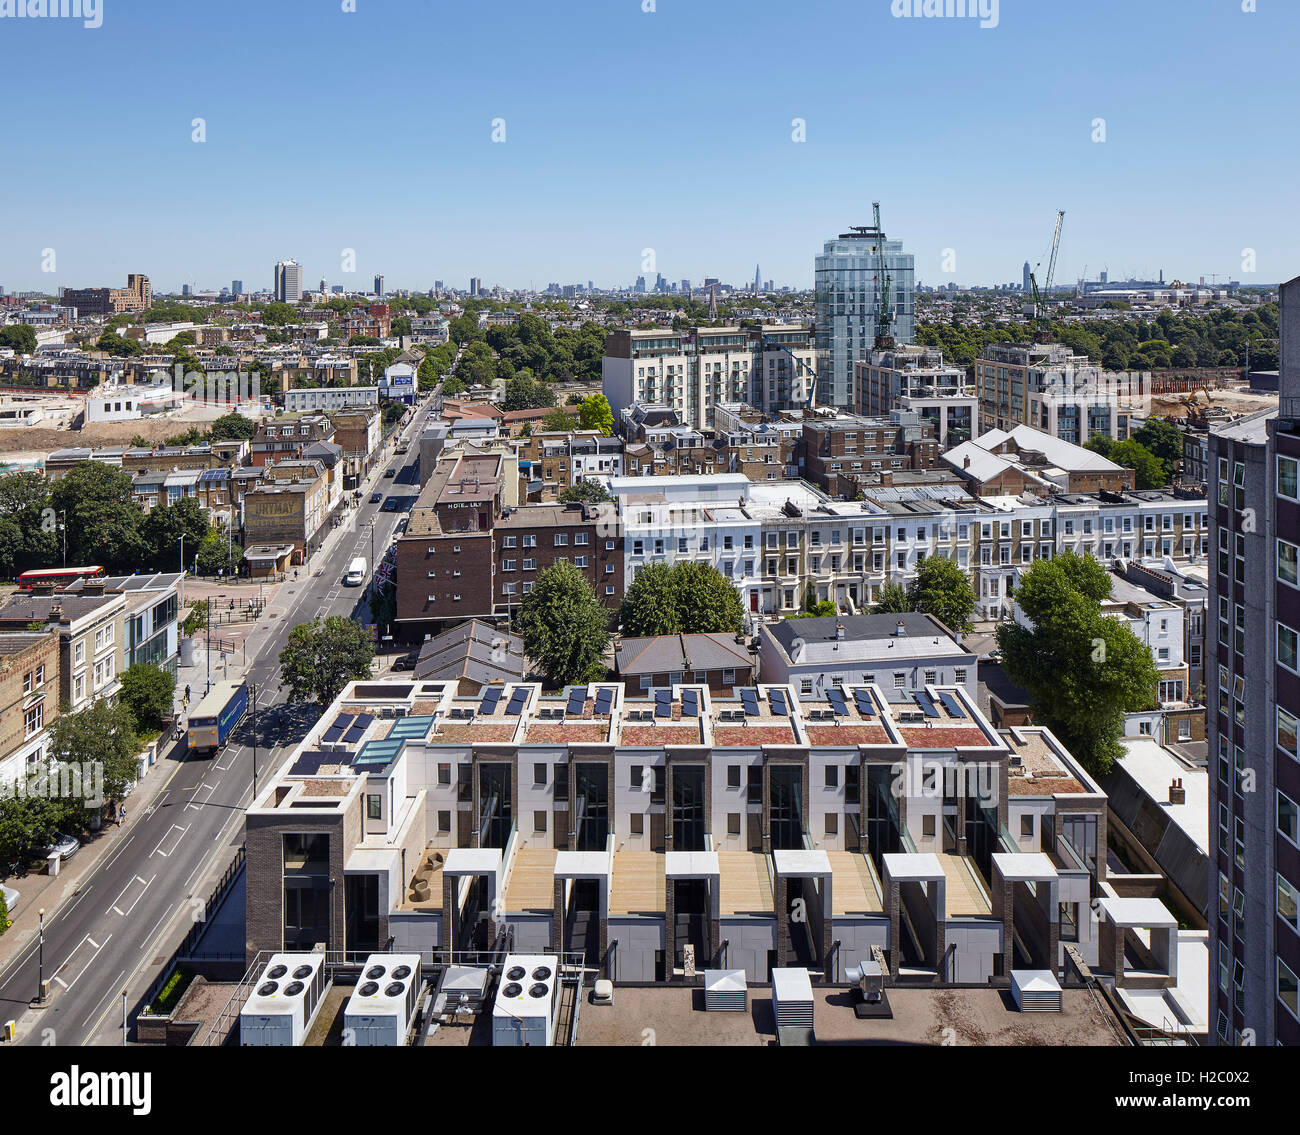 Arial view of Peel Place looking east with London on the horizon. Peel Place, London, United Kingdom. Architect: - Stock Image